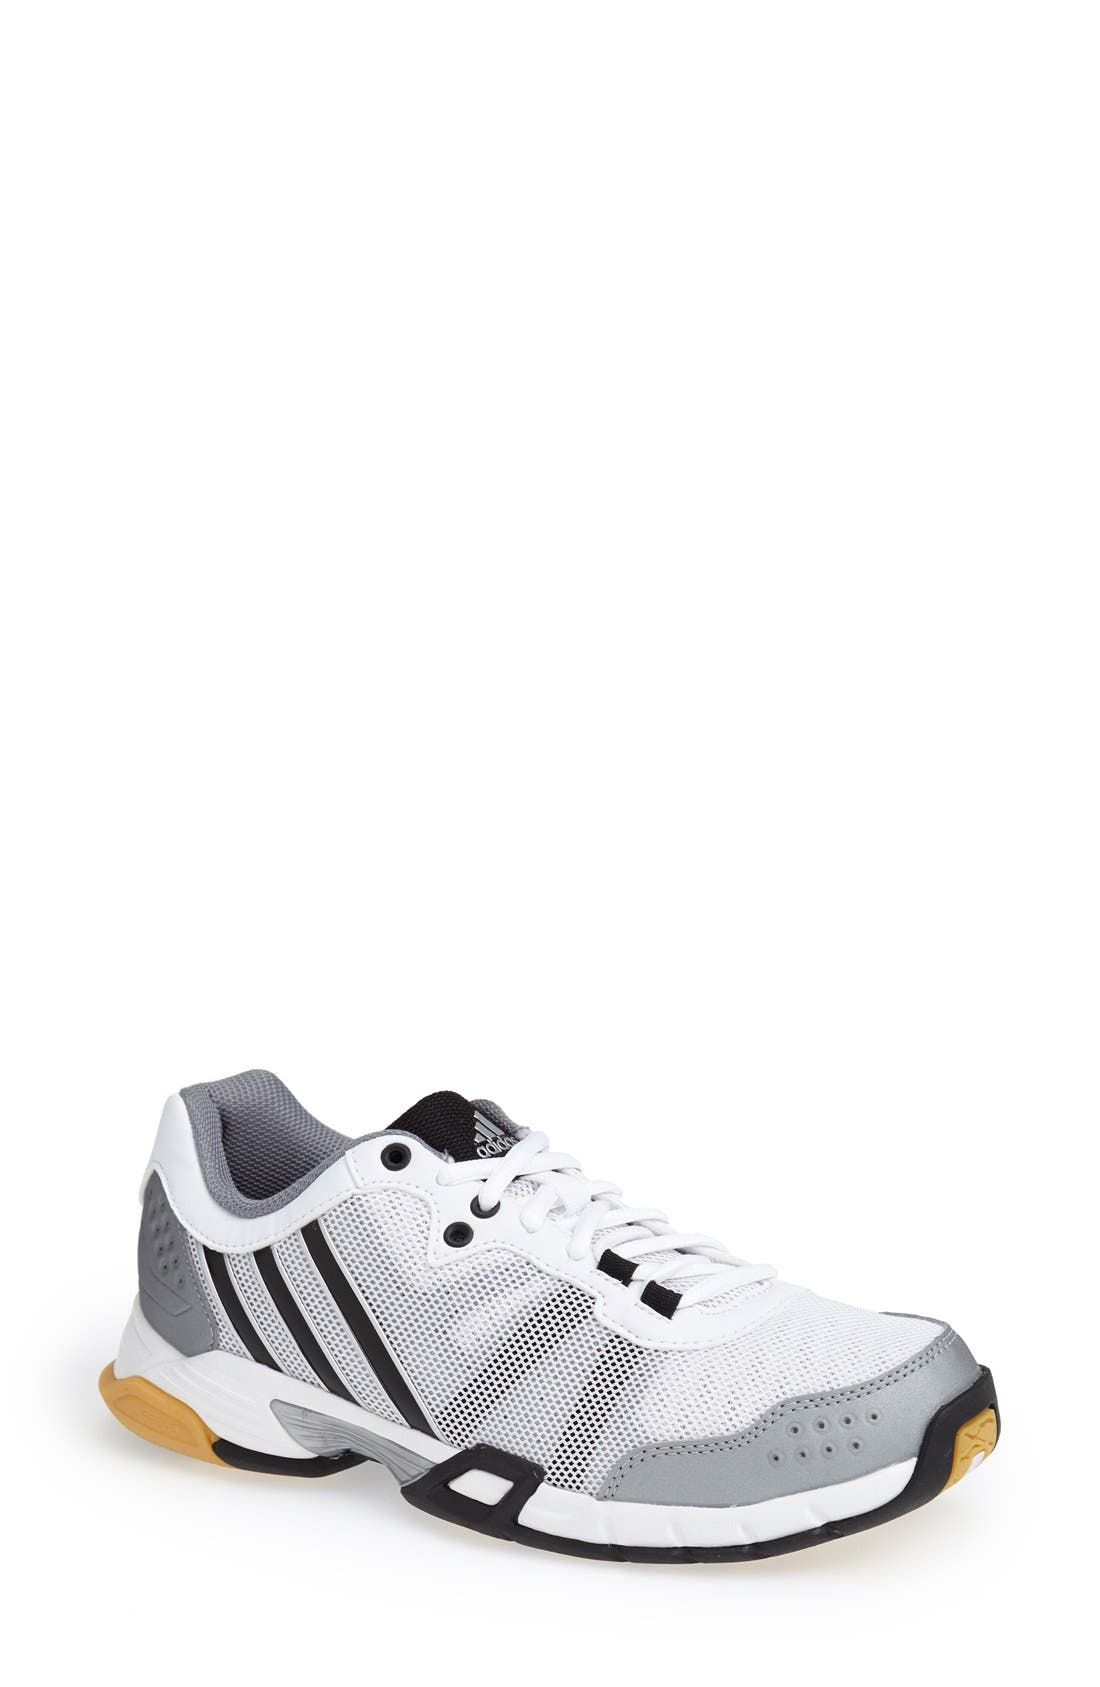 Alternate Image 1 Selected - adidas 'Volley Team 2' Volleyball Shoe (Women)